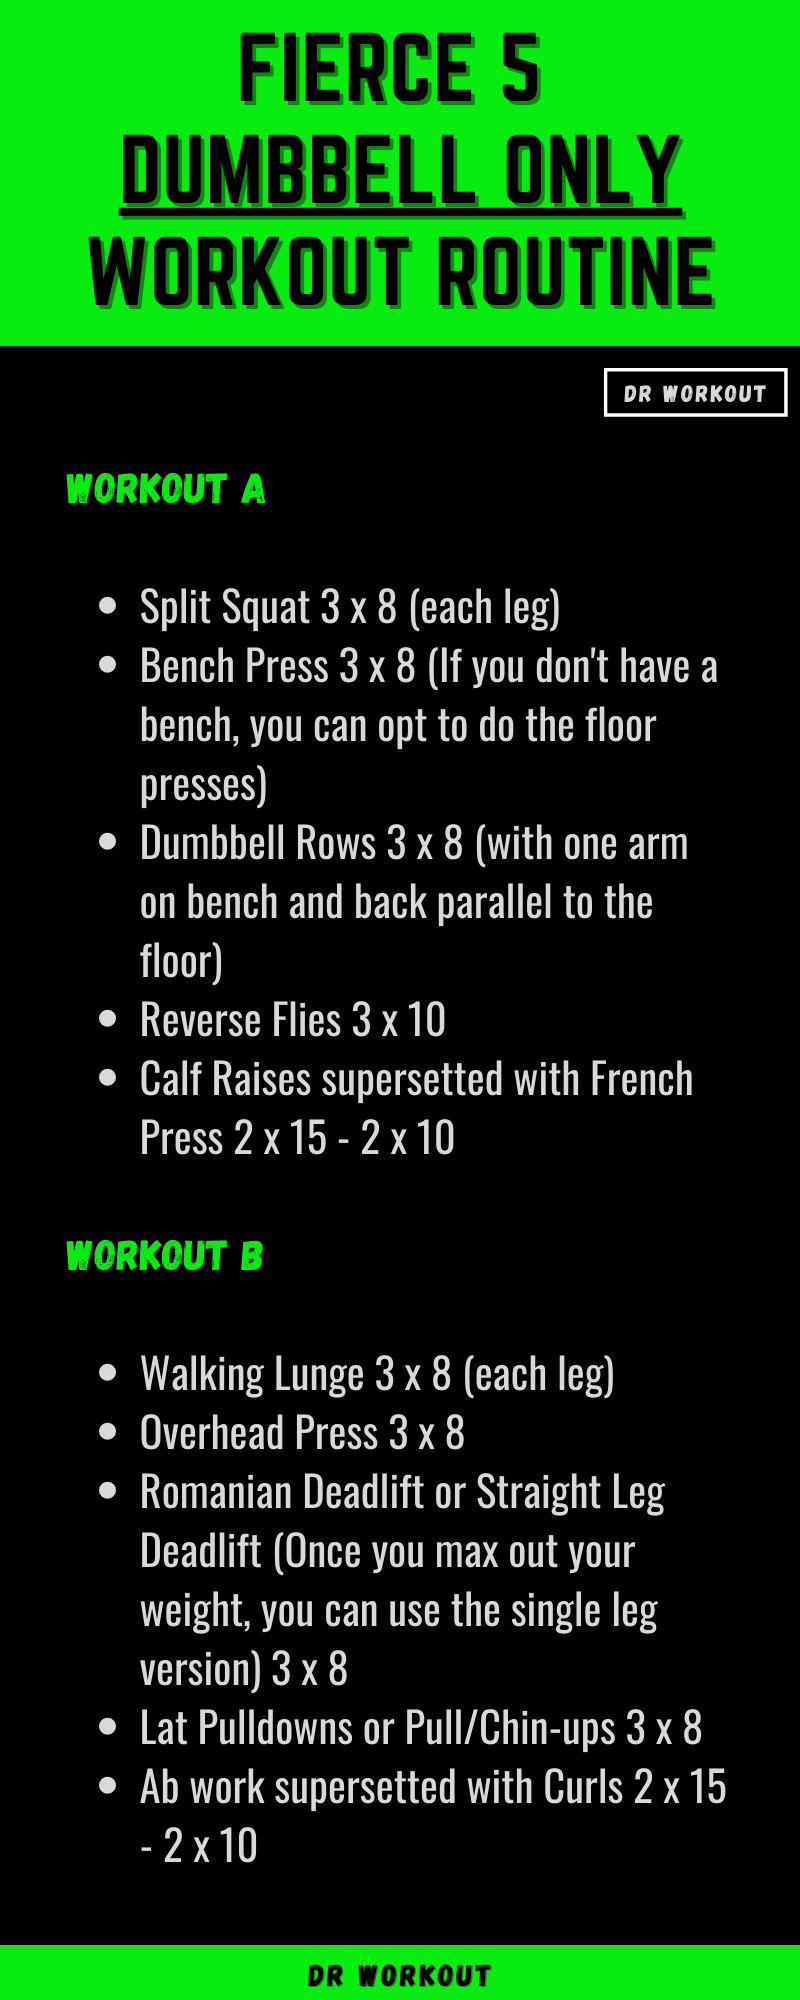 Fierce 5 Novice Dumbbell Only Workout Routine